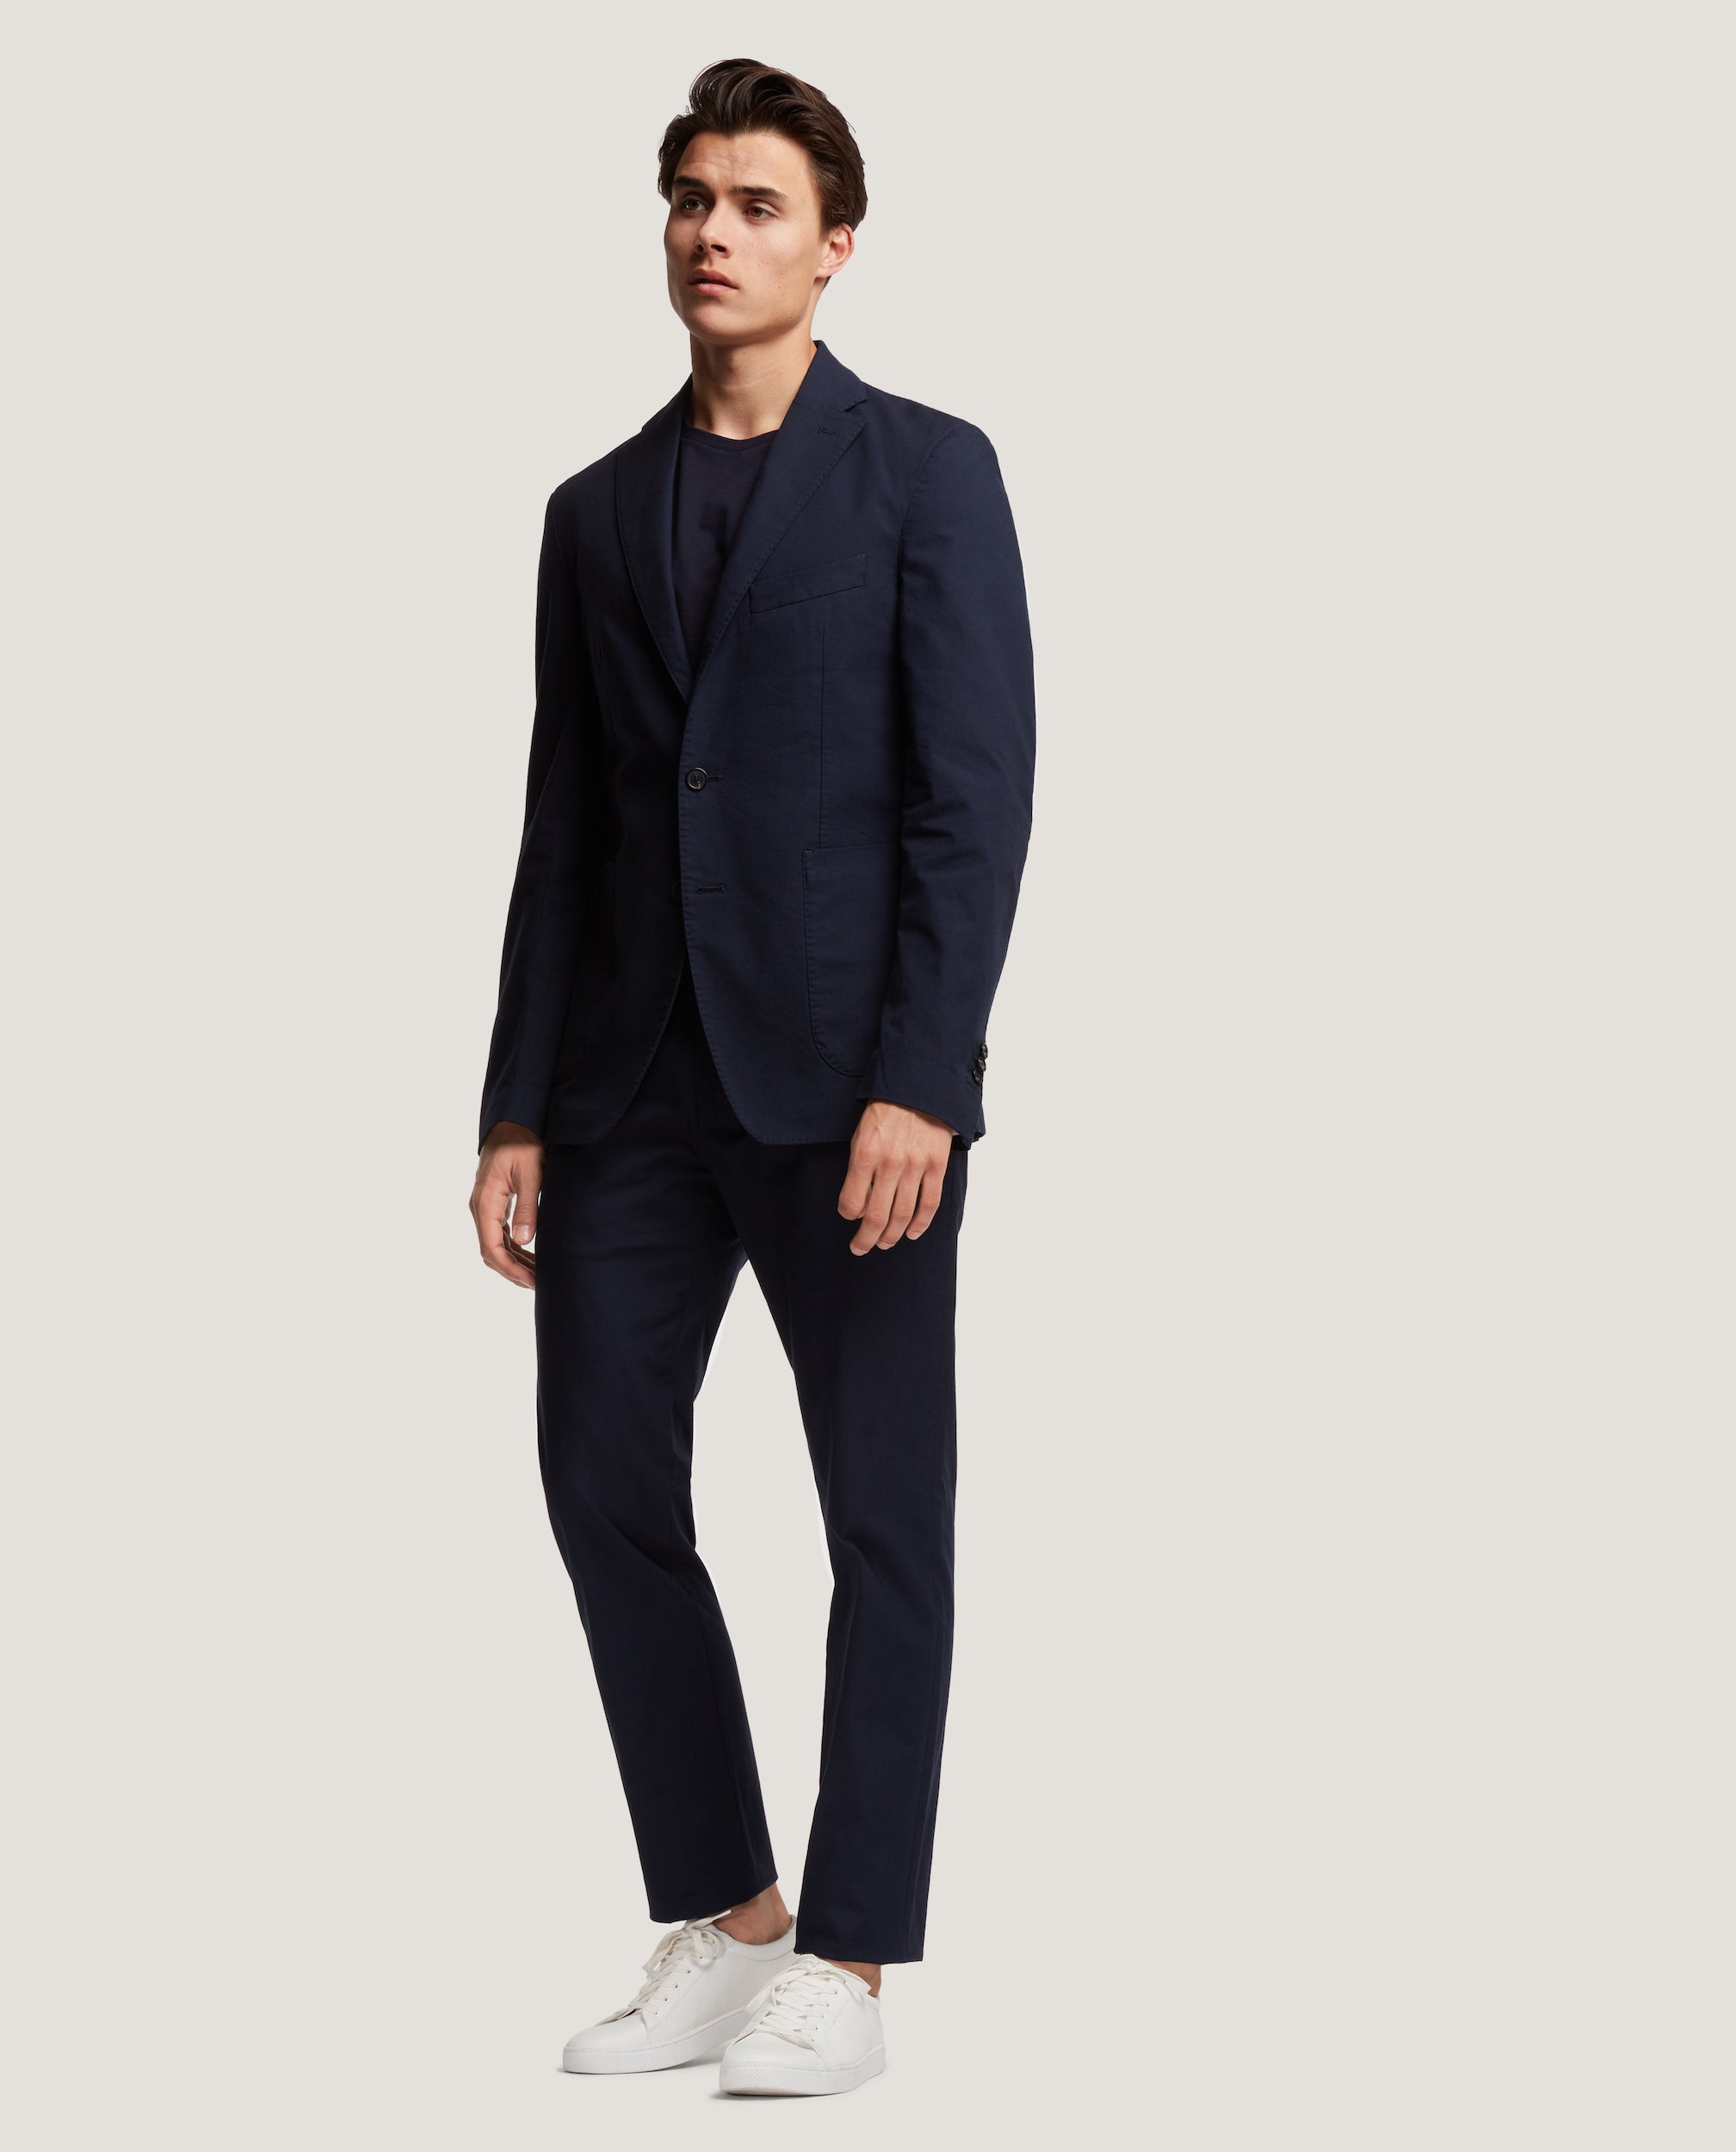 GEHRY Chino trousers | Slim fit | Cotton linen | Night Blue